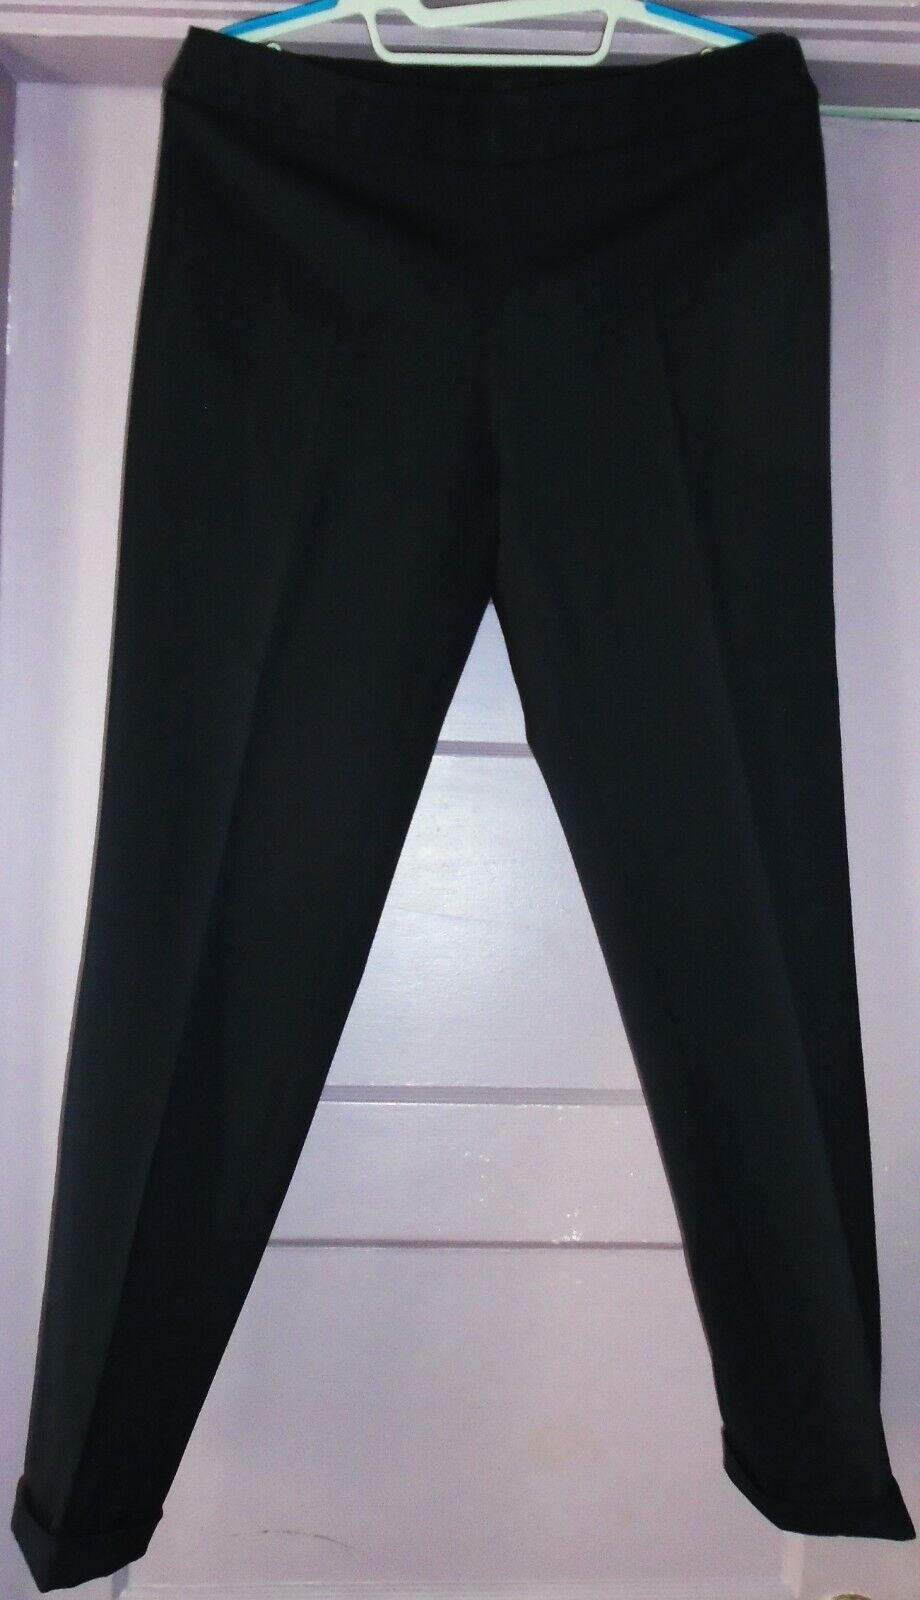 Emporio Armani Skinny ankle Dress Pants dark navy bluee, wool, not lined, Size 42